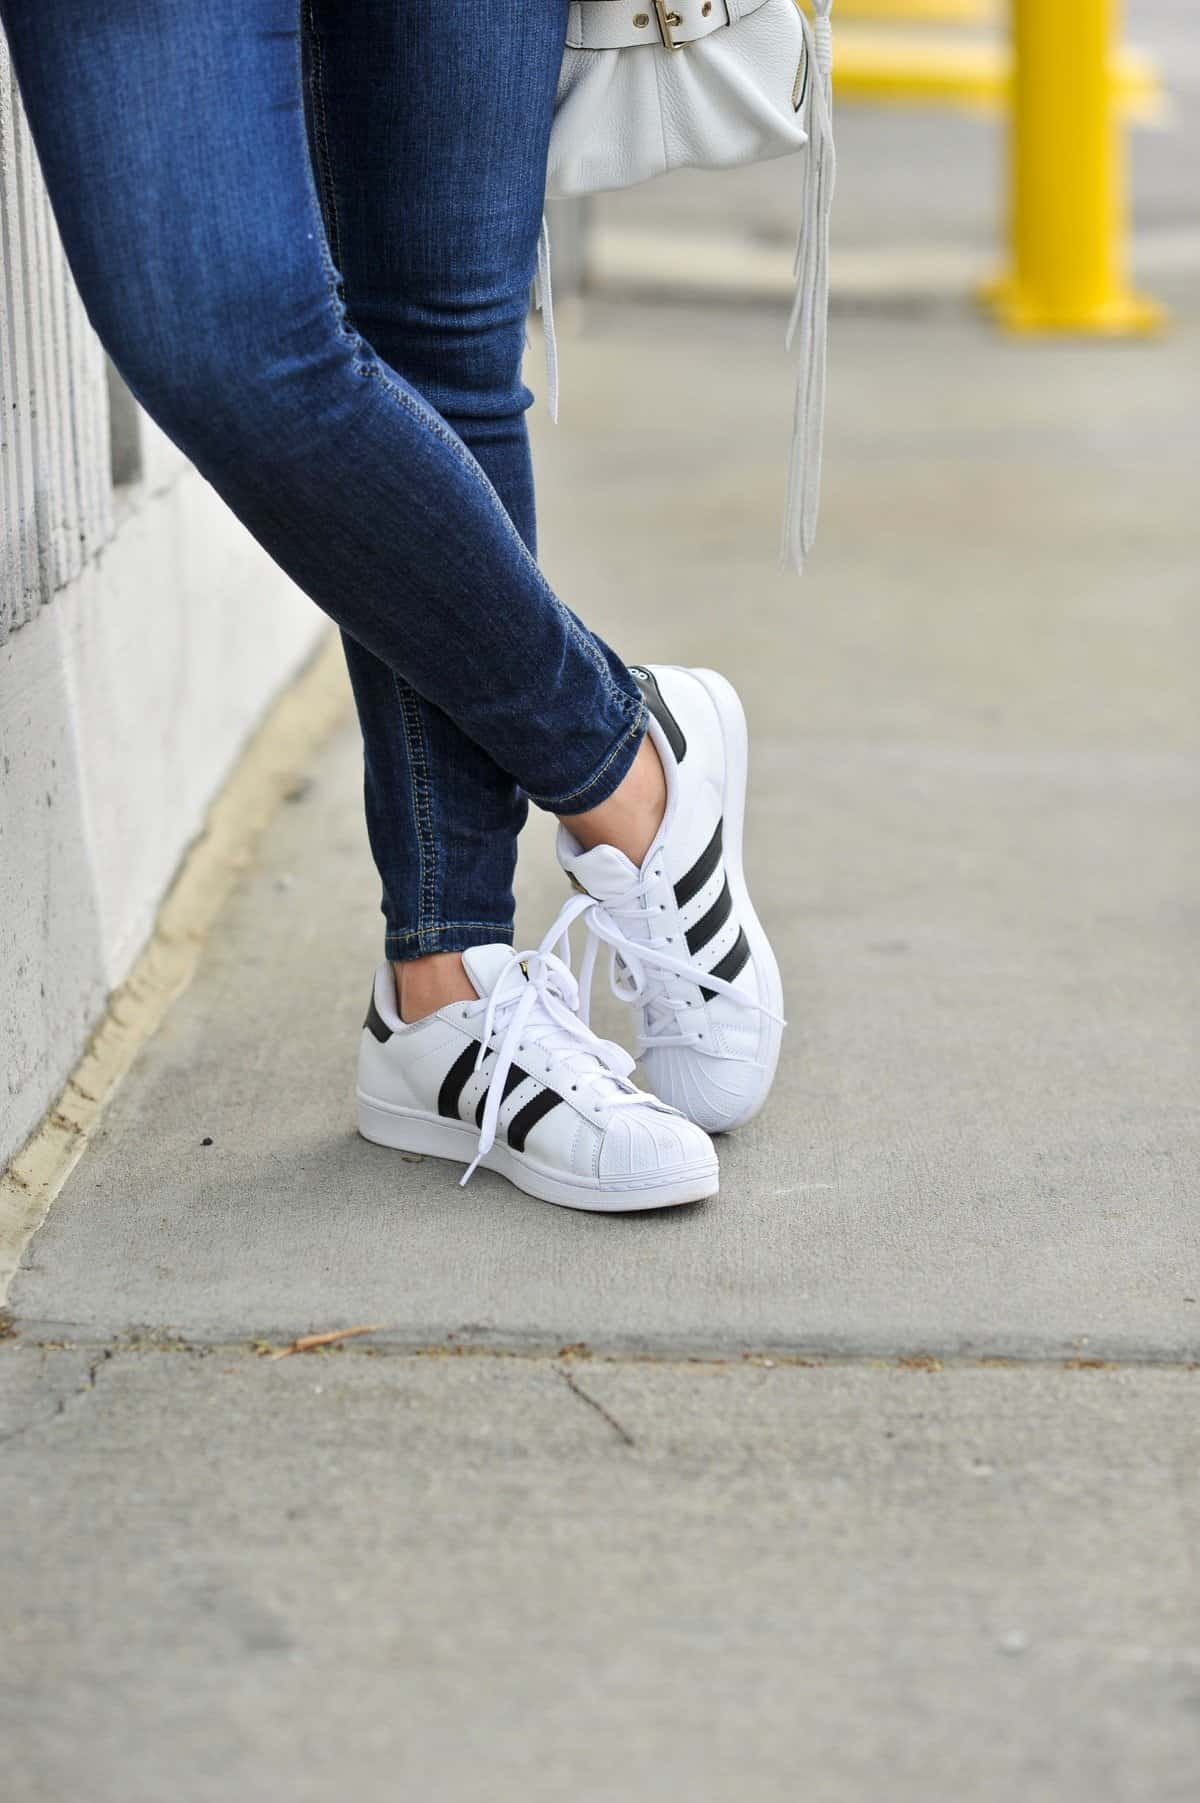 adidas superstar on